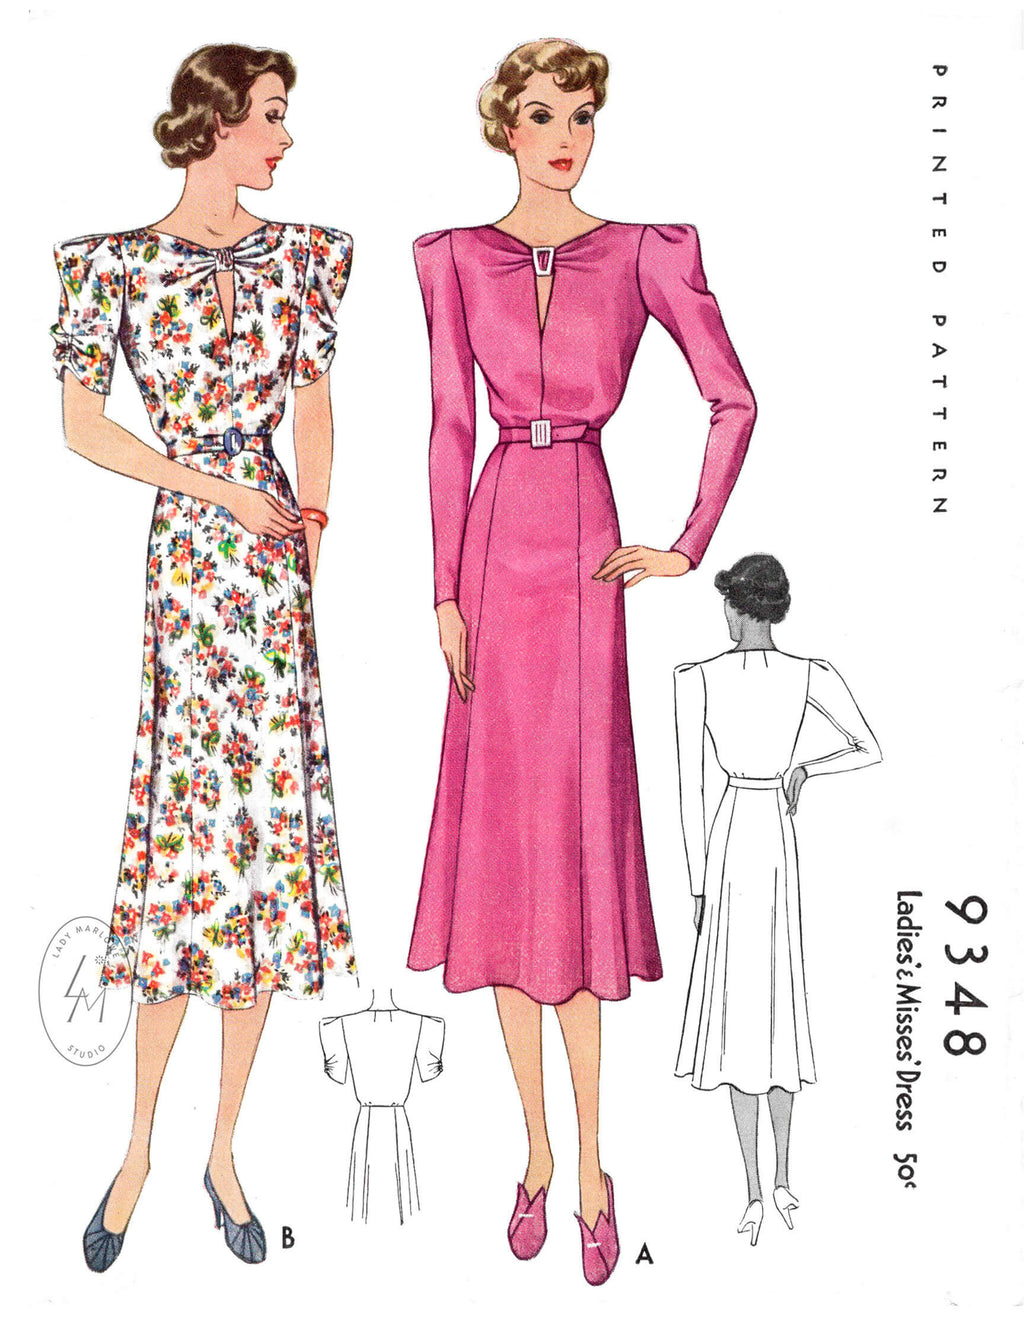 1930s 1937 vintage day dress McCall 9348 statement sleeves flounce skirt ruching detail reproduction sewing pattern